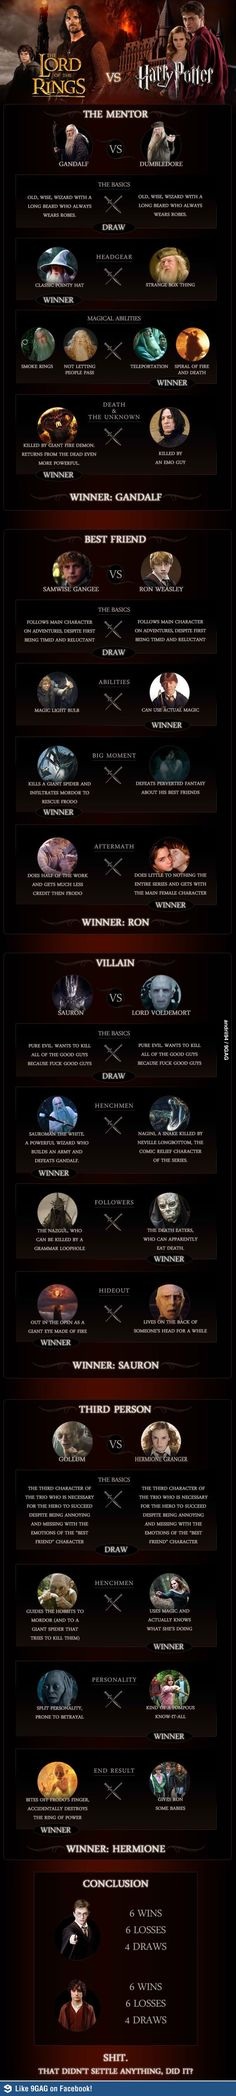 Lord of the Rings vs Harry Potter. Kinda funny